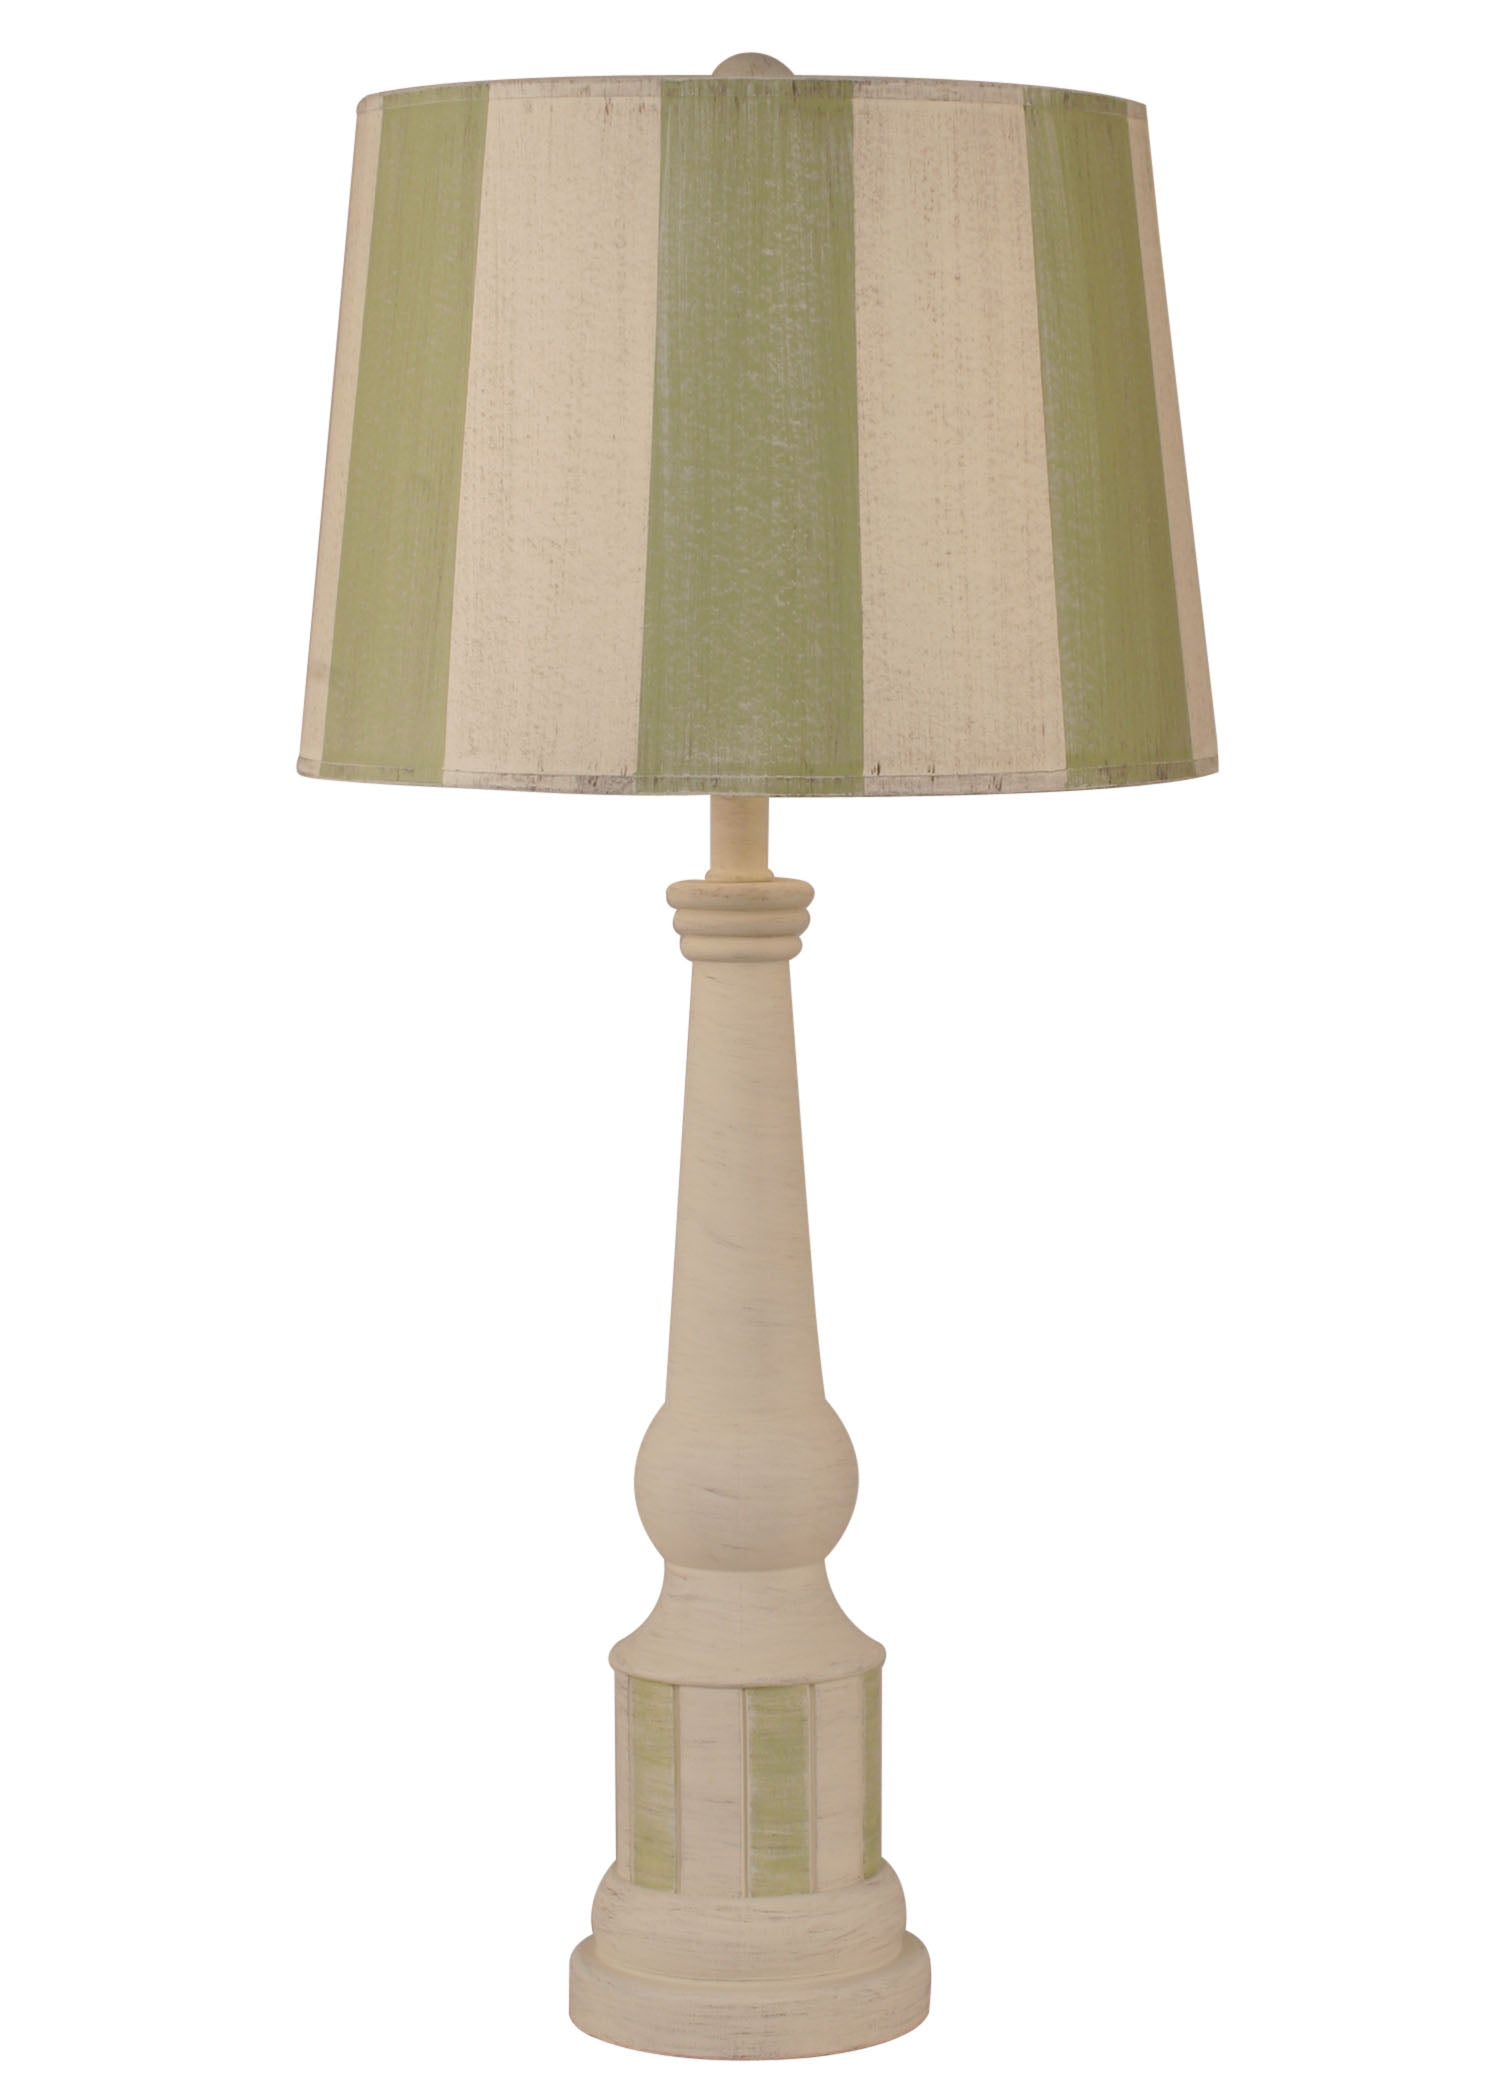 Cottage/Seagrass Striped Pedestal Table Lamp - Coast Lamp Shop